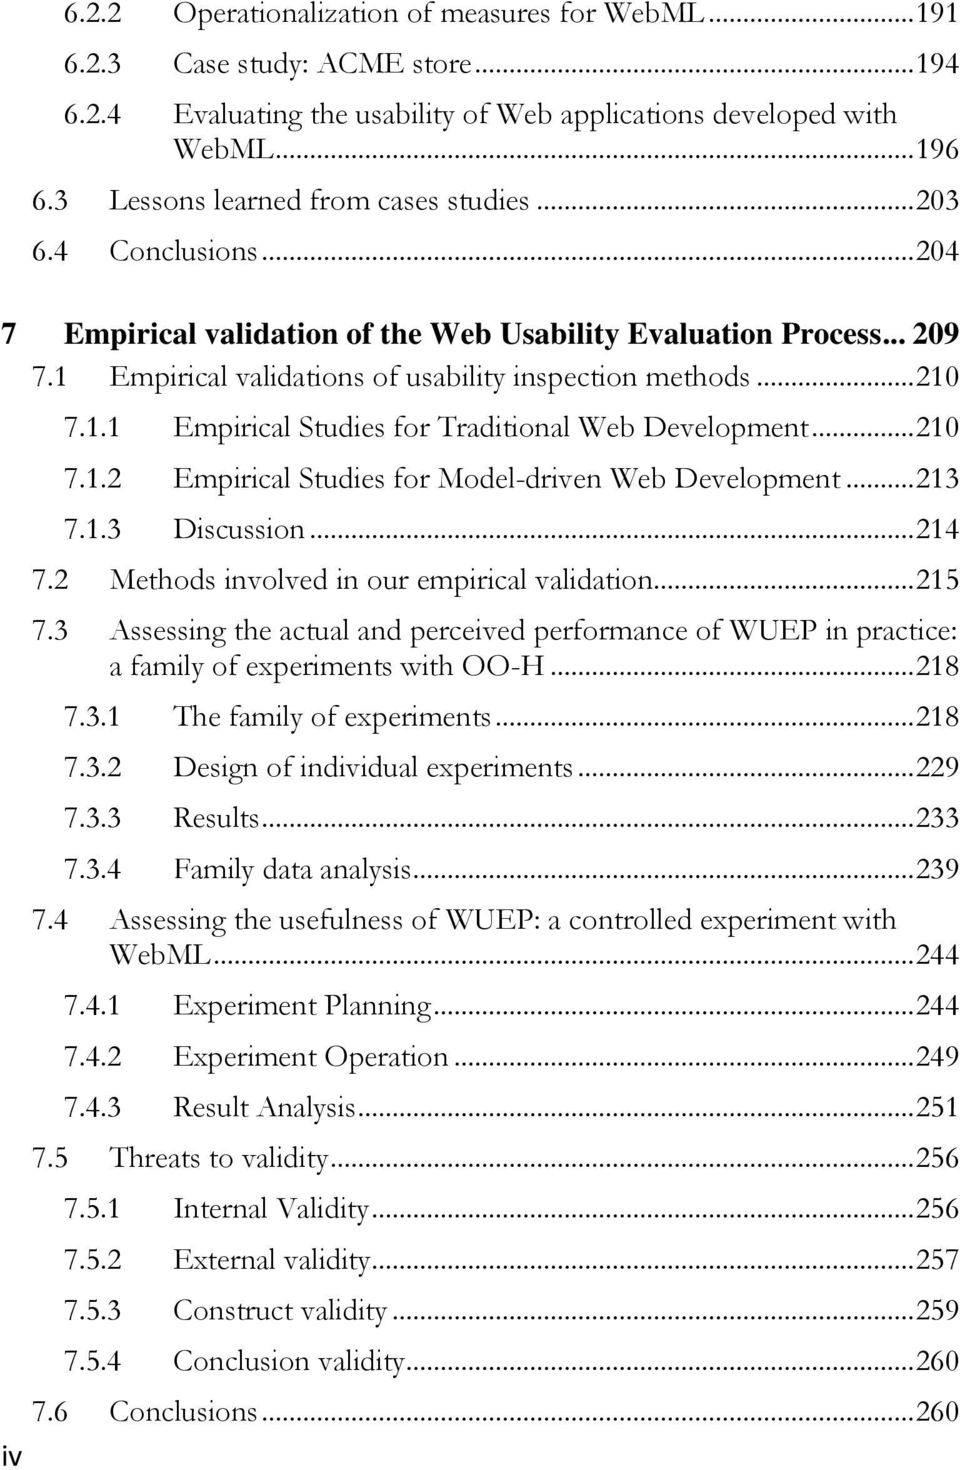 .. 210 7.1.1 Empirical Studies for Traditional Web Development... 210 7.1.2 Empirical Studies for Model-driven Web Development... 213 7.1.3 Discussion... 214 7.